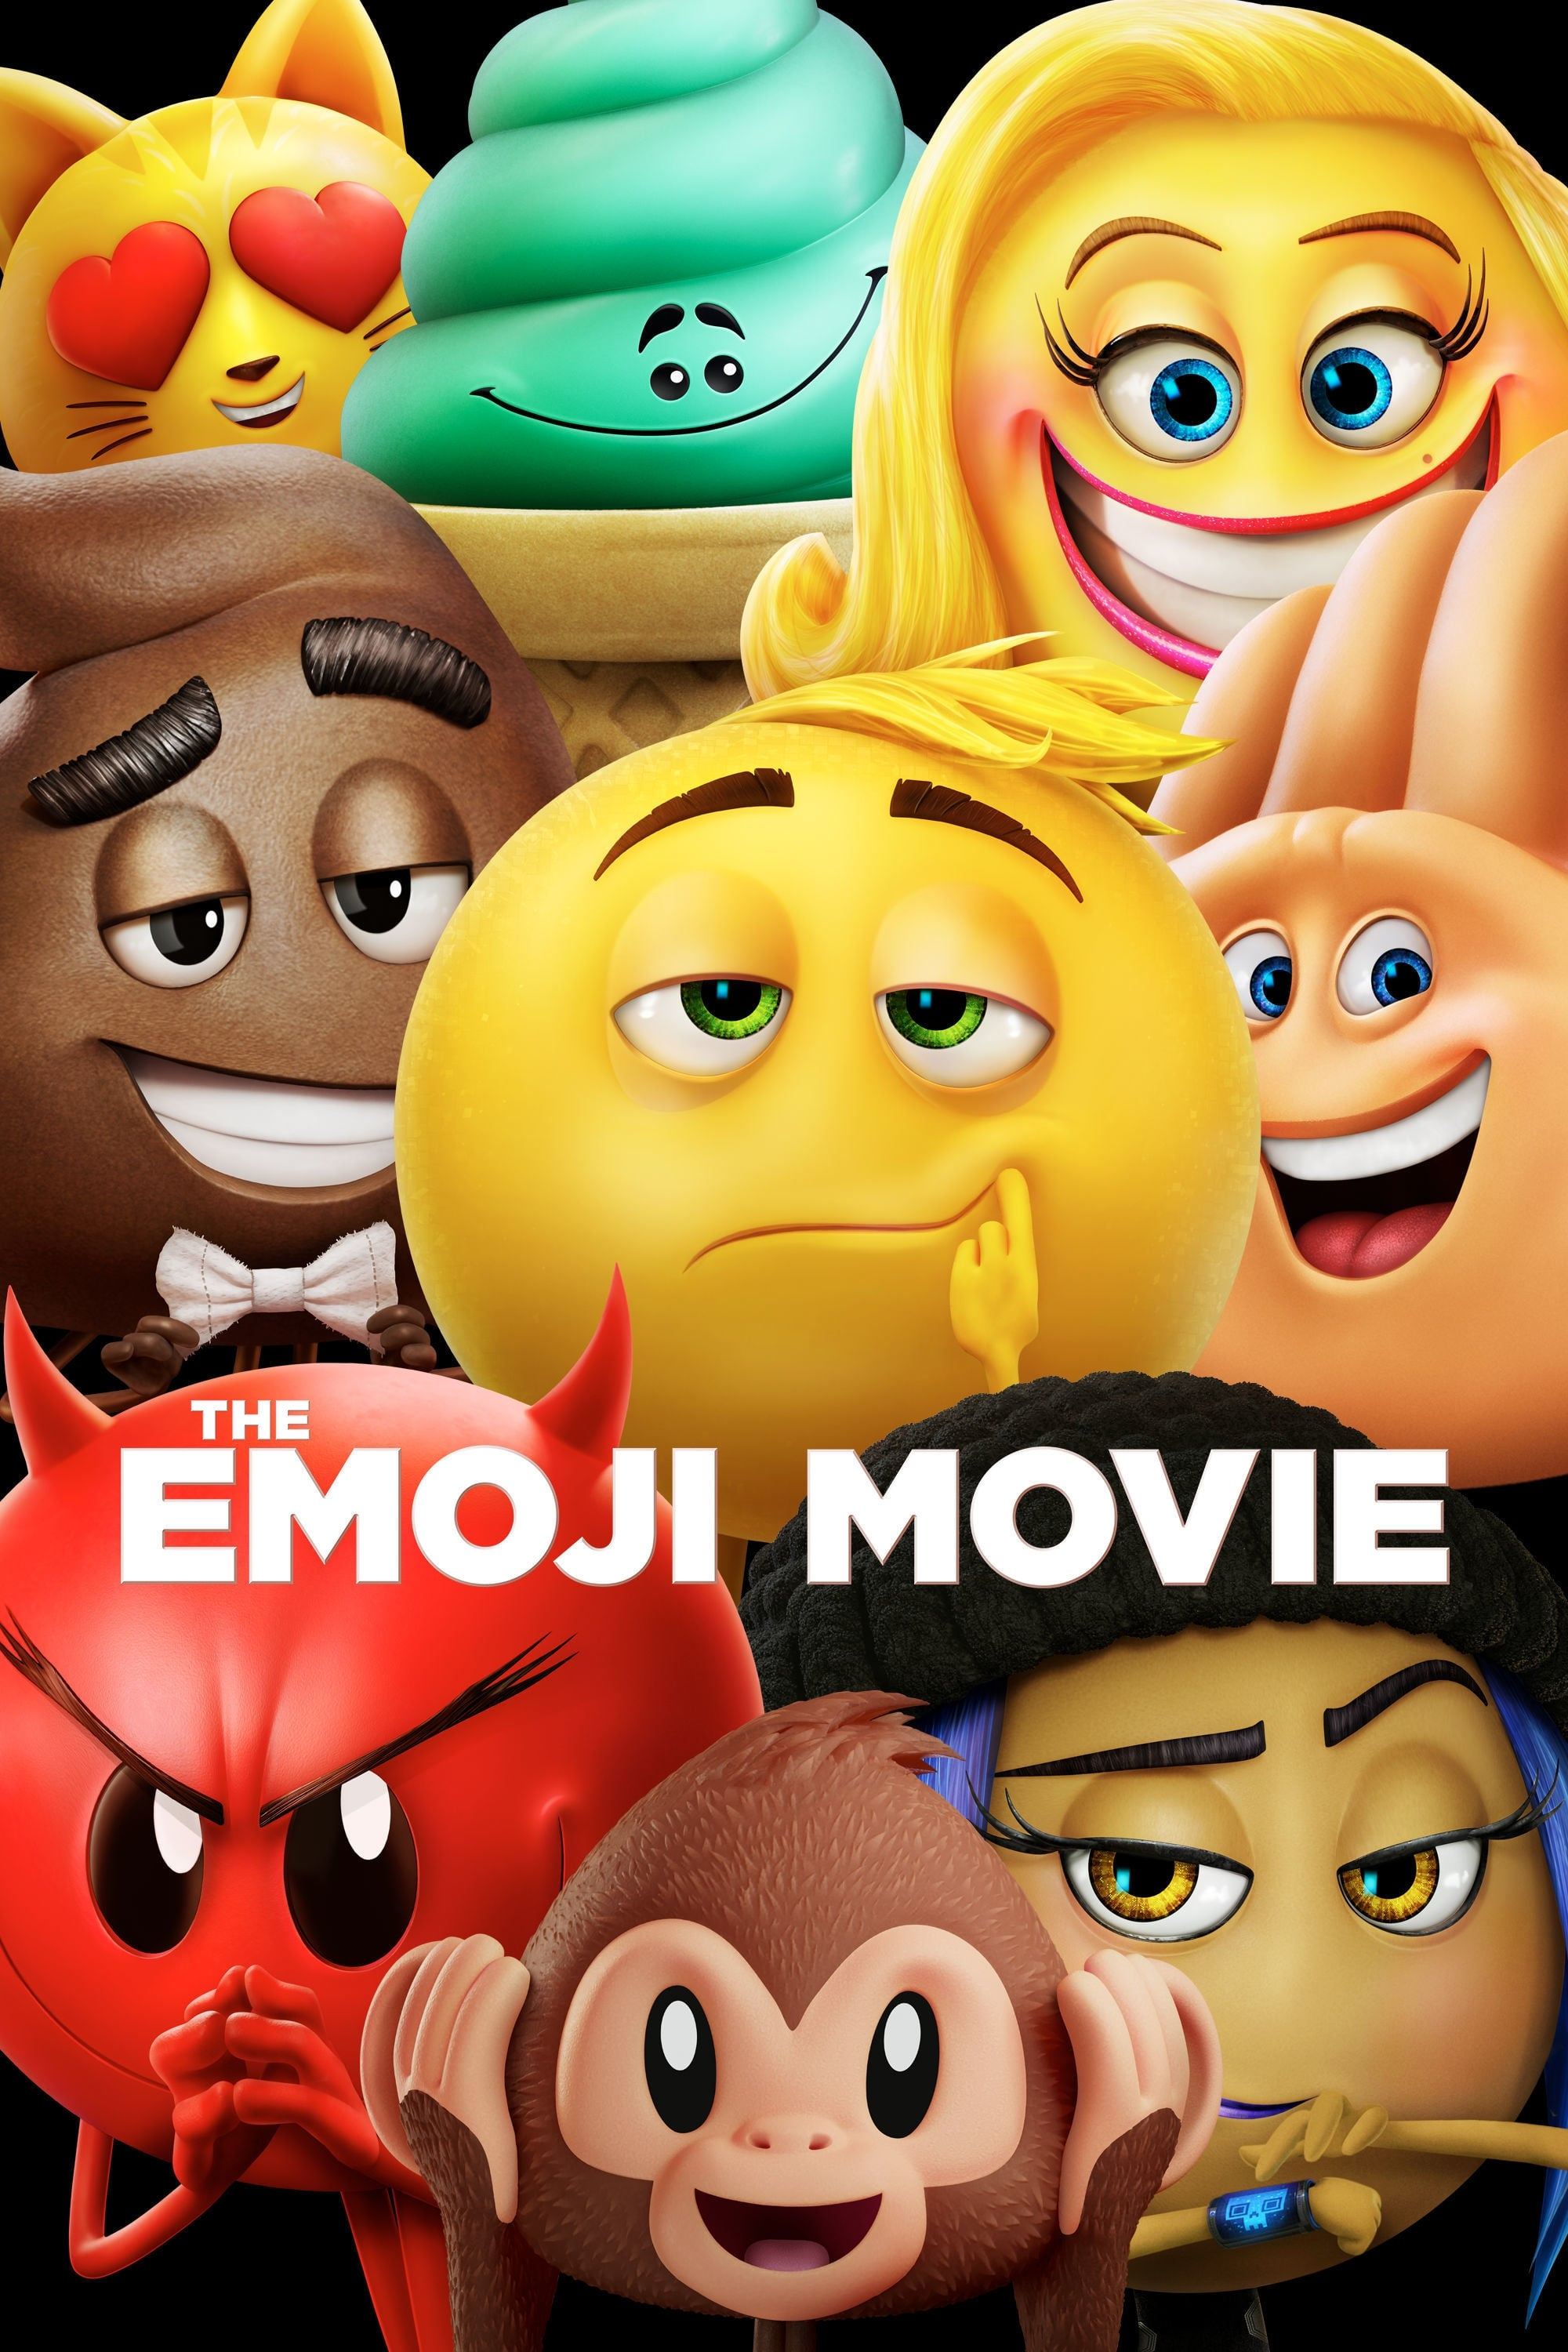 image for The Emoji Movie